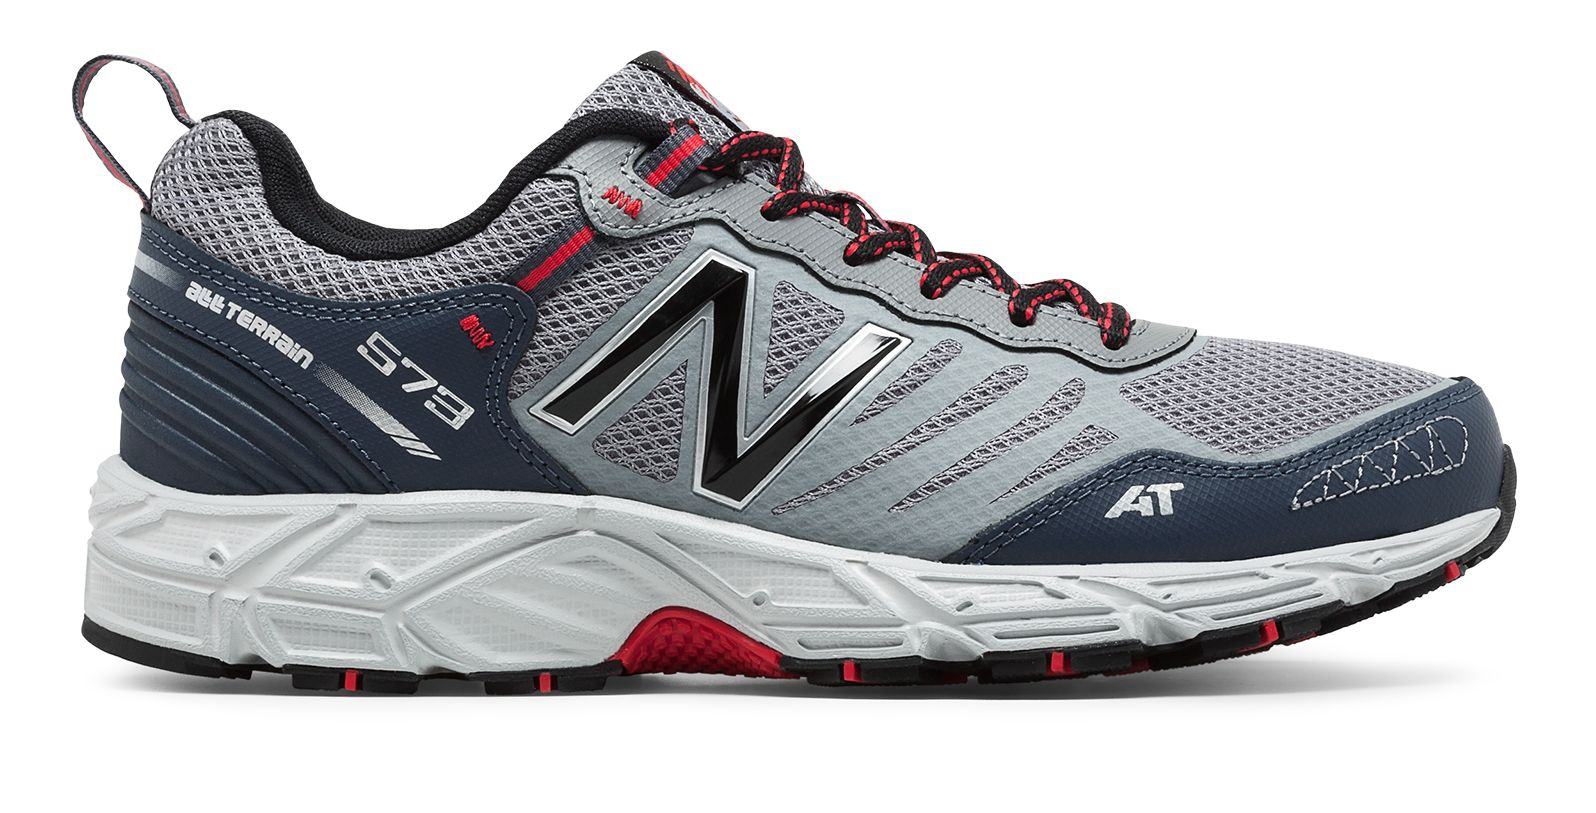 new balance all terrain 573 review